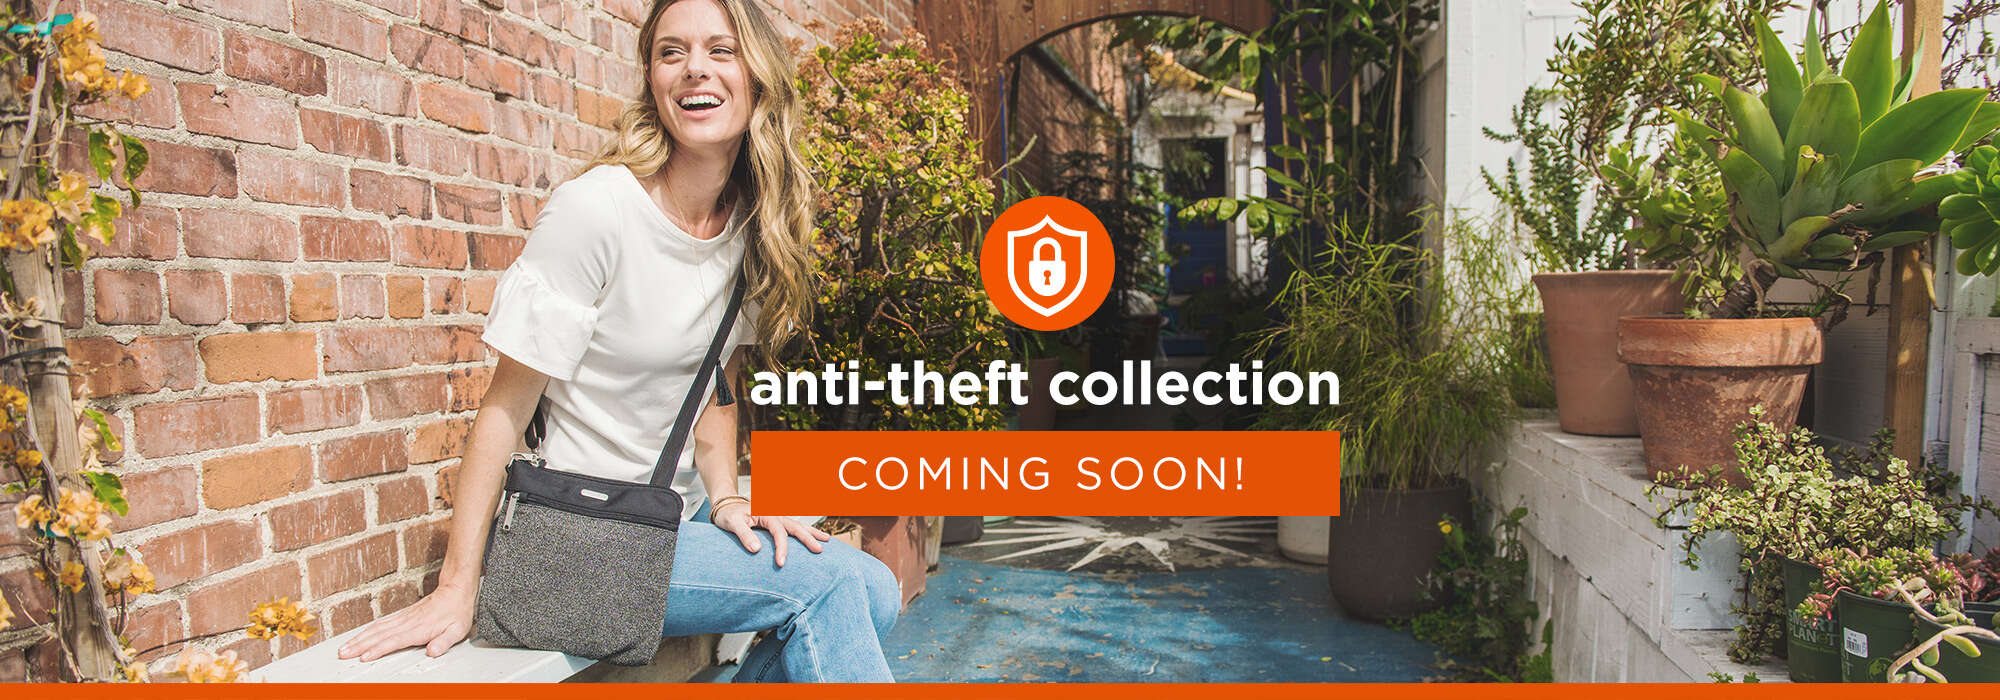 anti-theft collection: coming soon